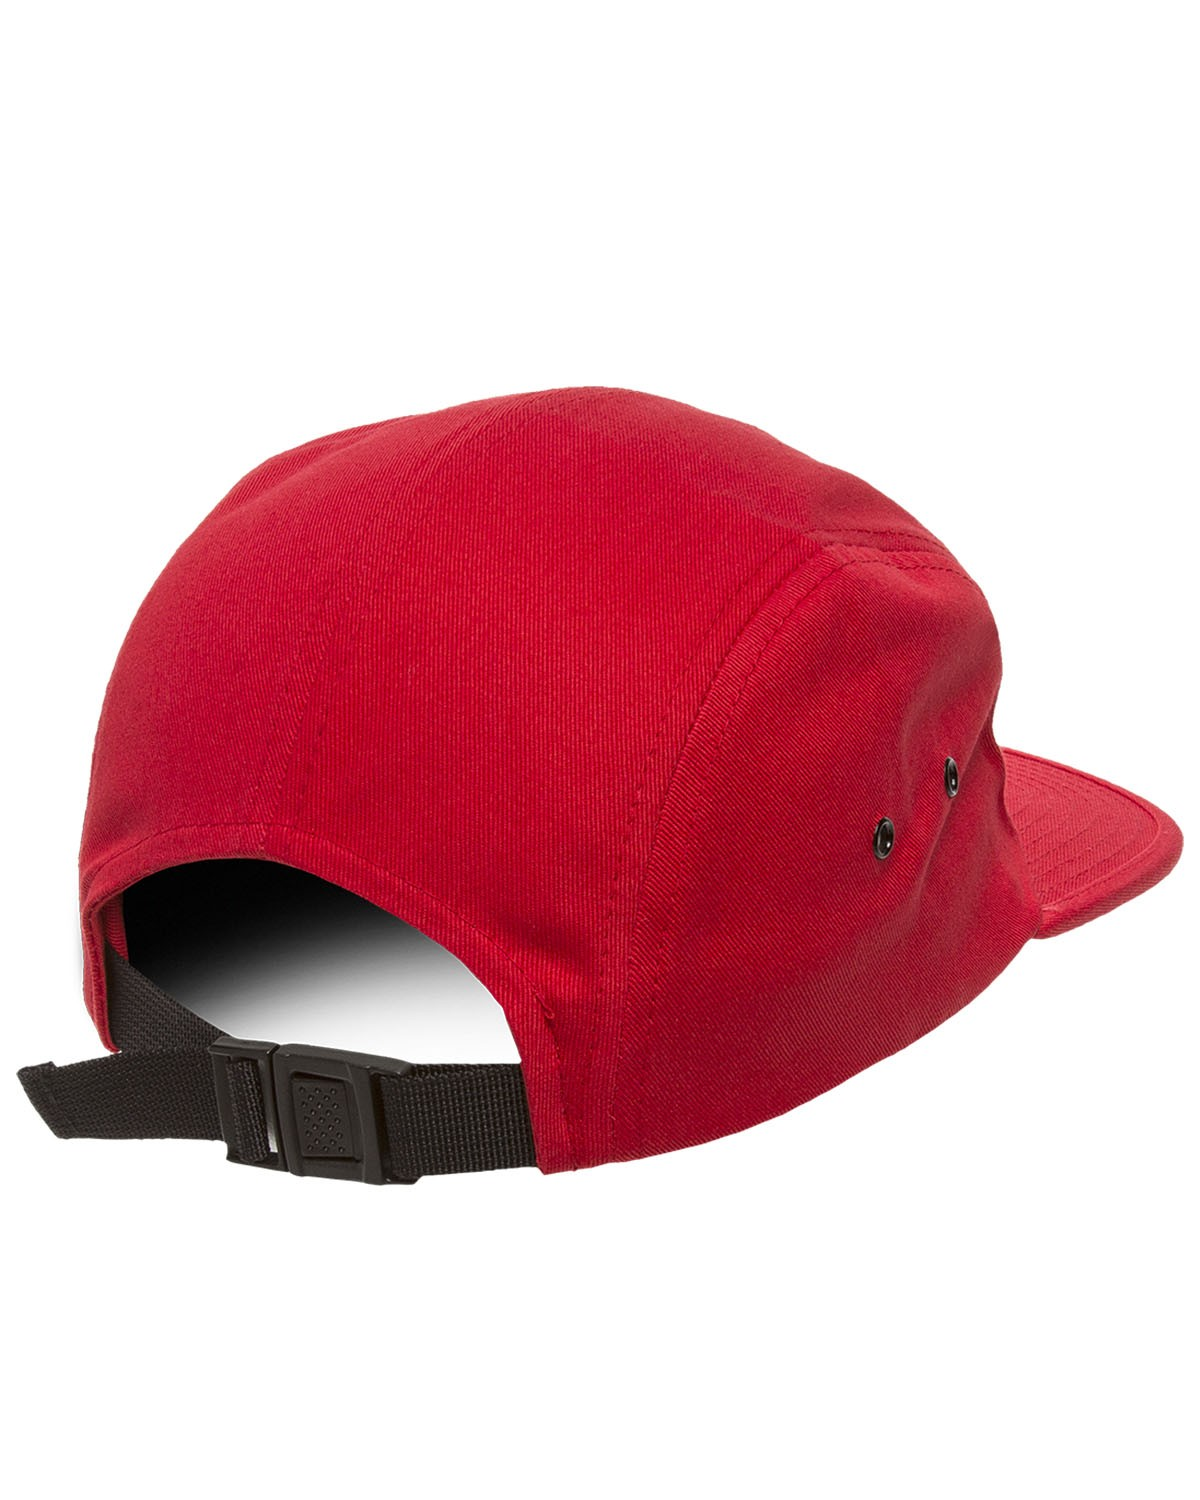 Y7005 Yupoong RED